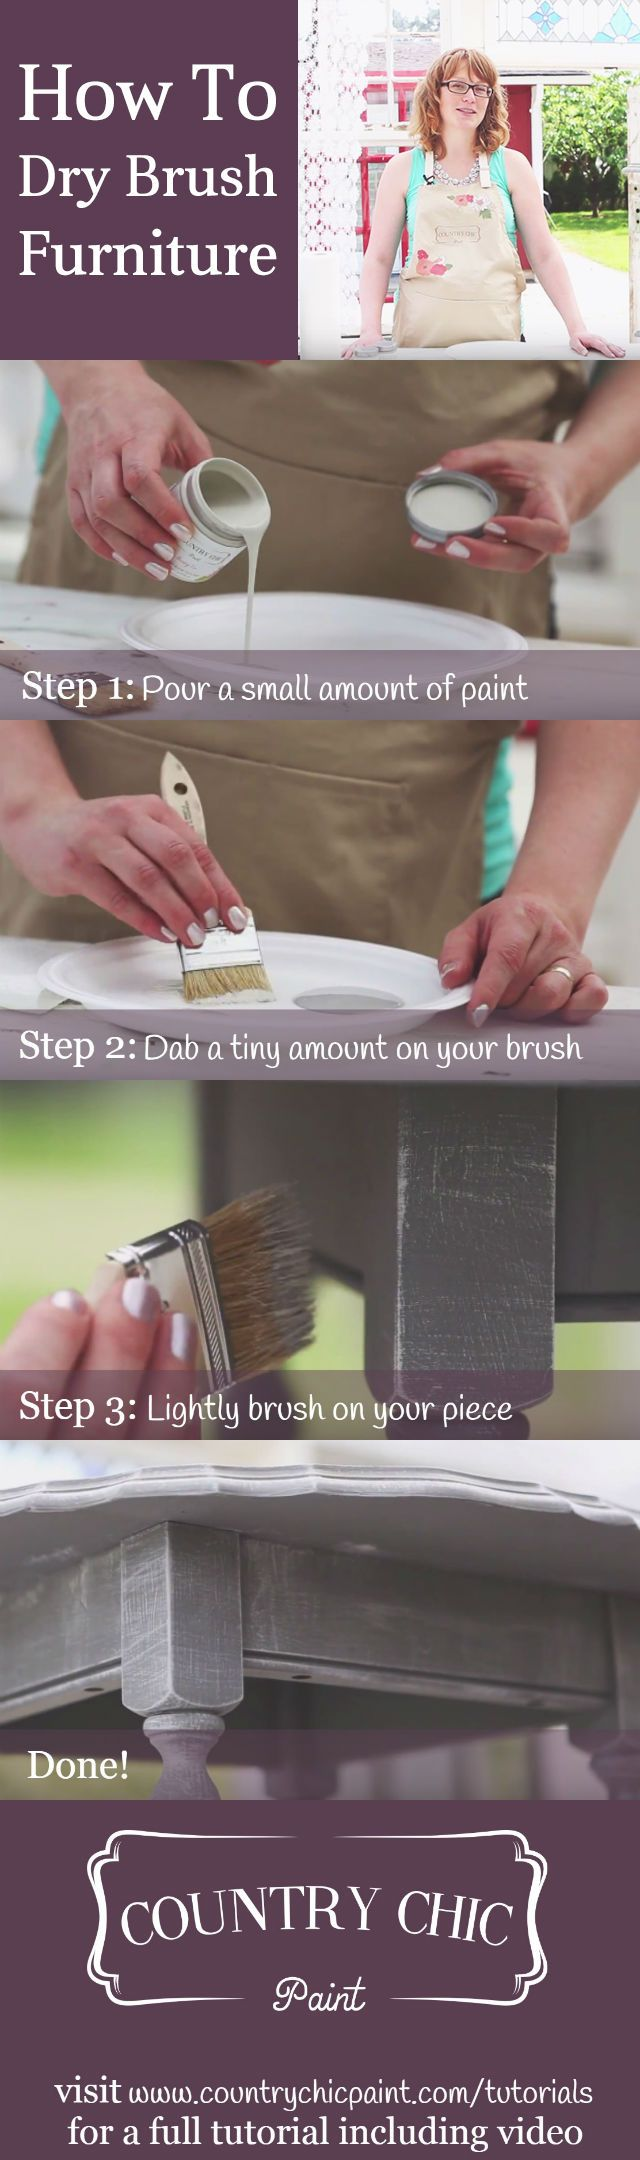 How to dry brush furniture | dry brushing tutorial {Country Chic Paint} #countrychicpaint - countrychicpaint.com/tutorials